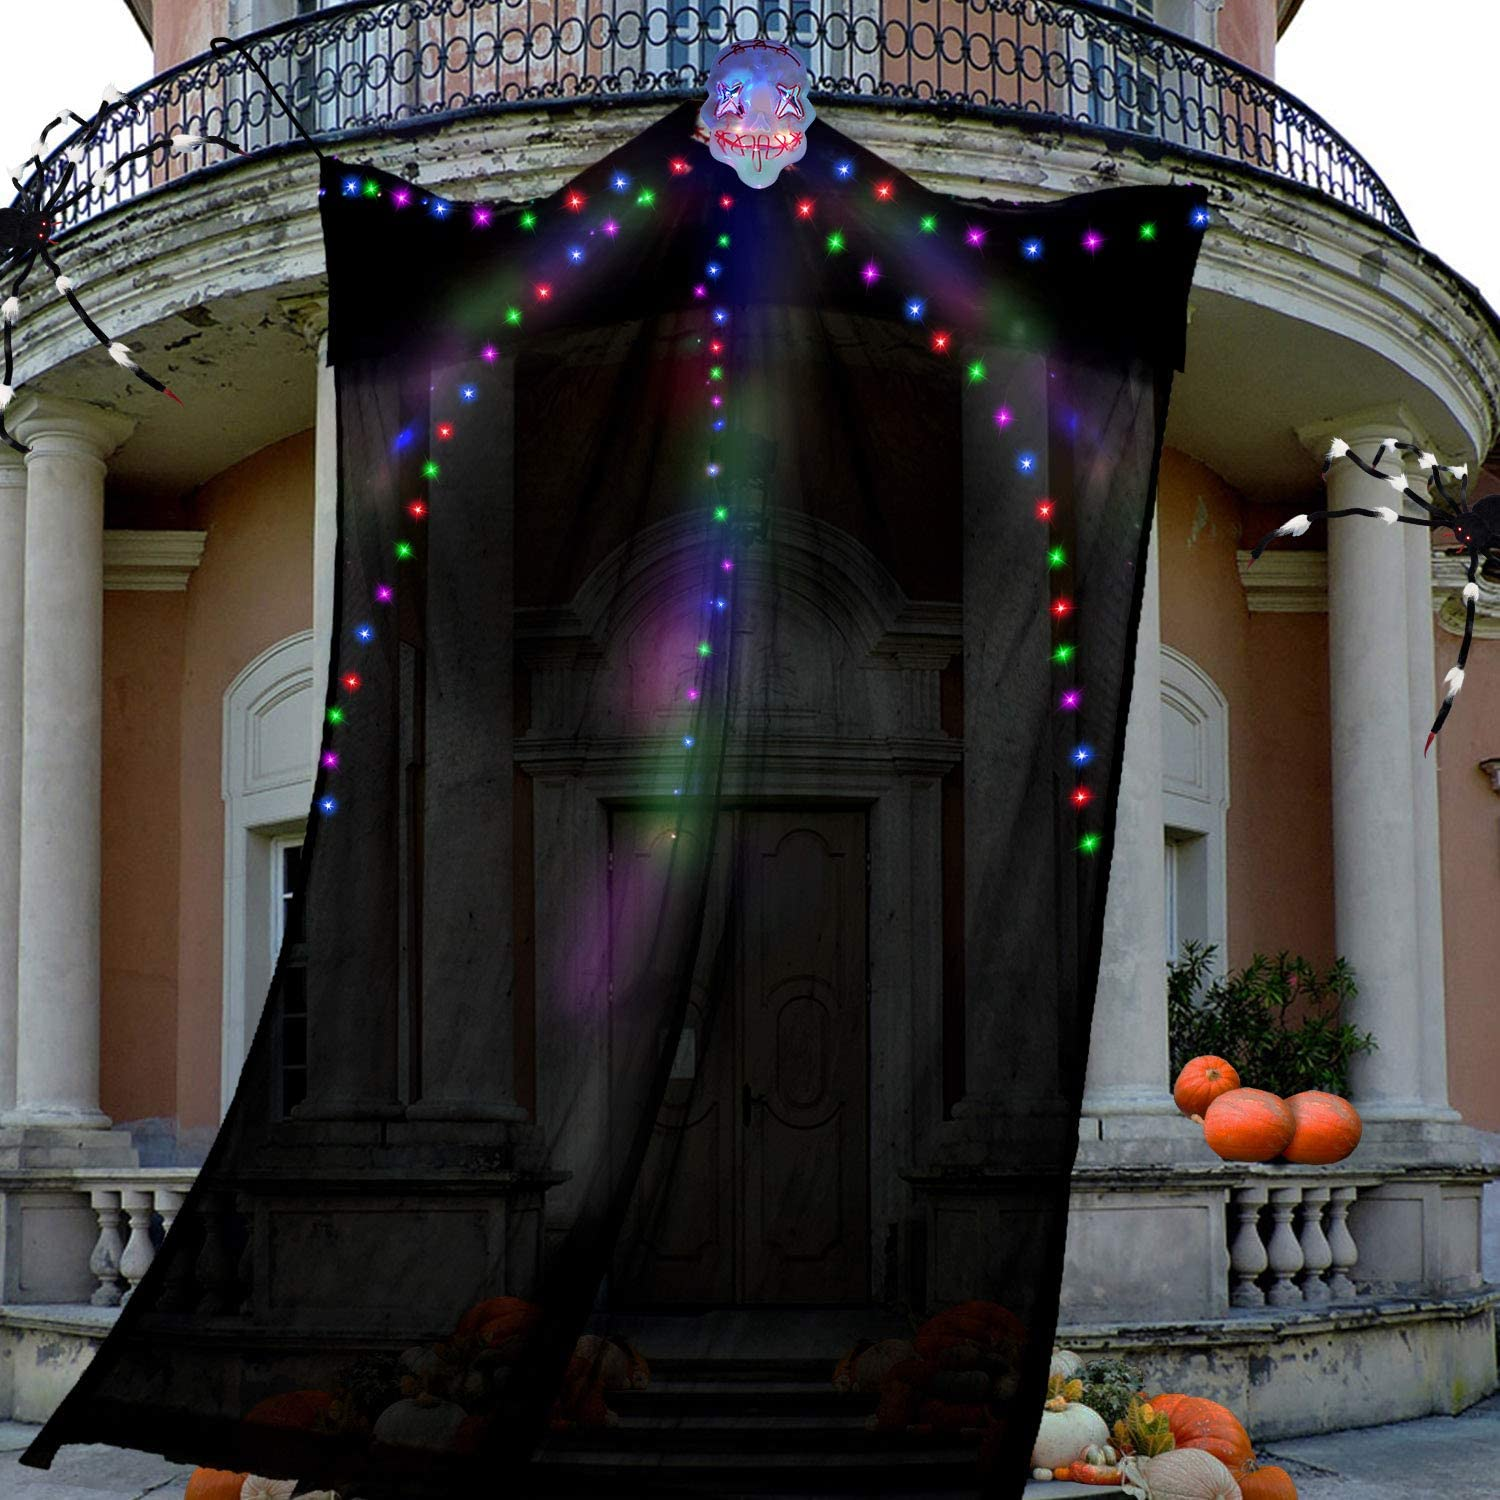 TURNMEON Halloween Decorations Outdoor 10 Ft Hanging Lighted Glowing Ghost Tree Decorations, 80 LEDs Scary Ghosts Spooky Props Indoor Outdoor Patio, Garden, Gate, Yard, Halloween Decorations